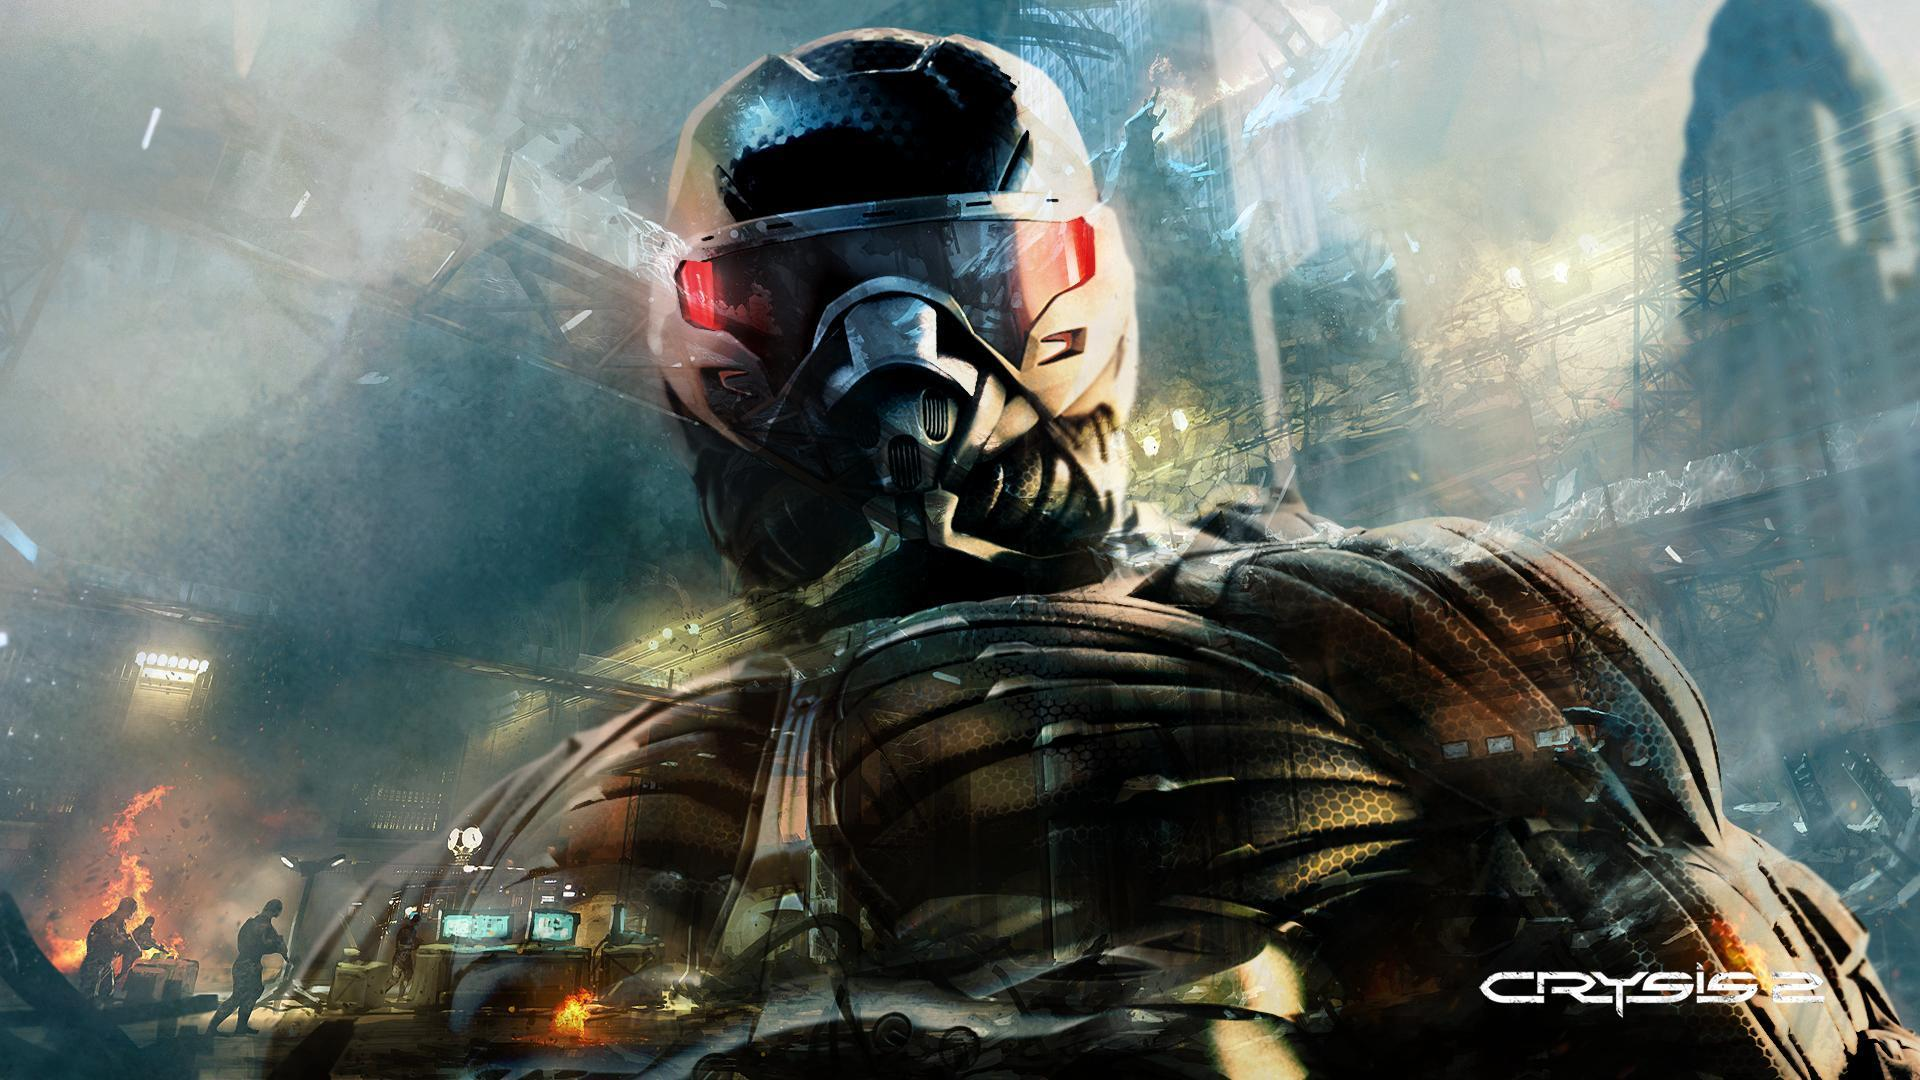 crysis 4 wallpaper hd-#32